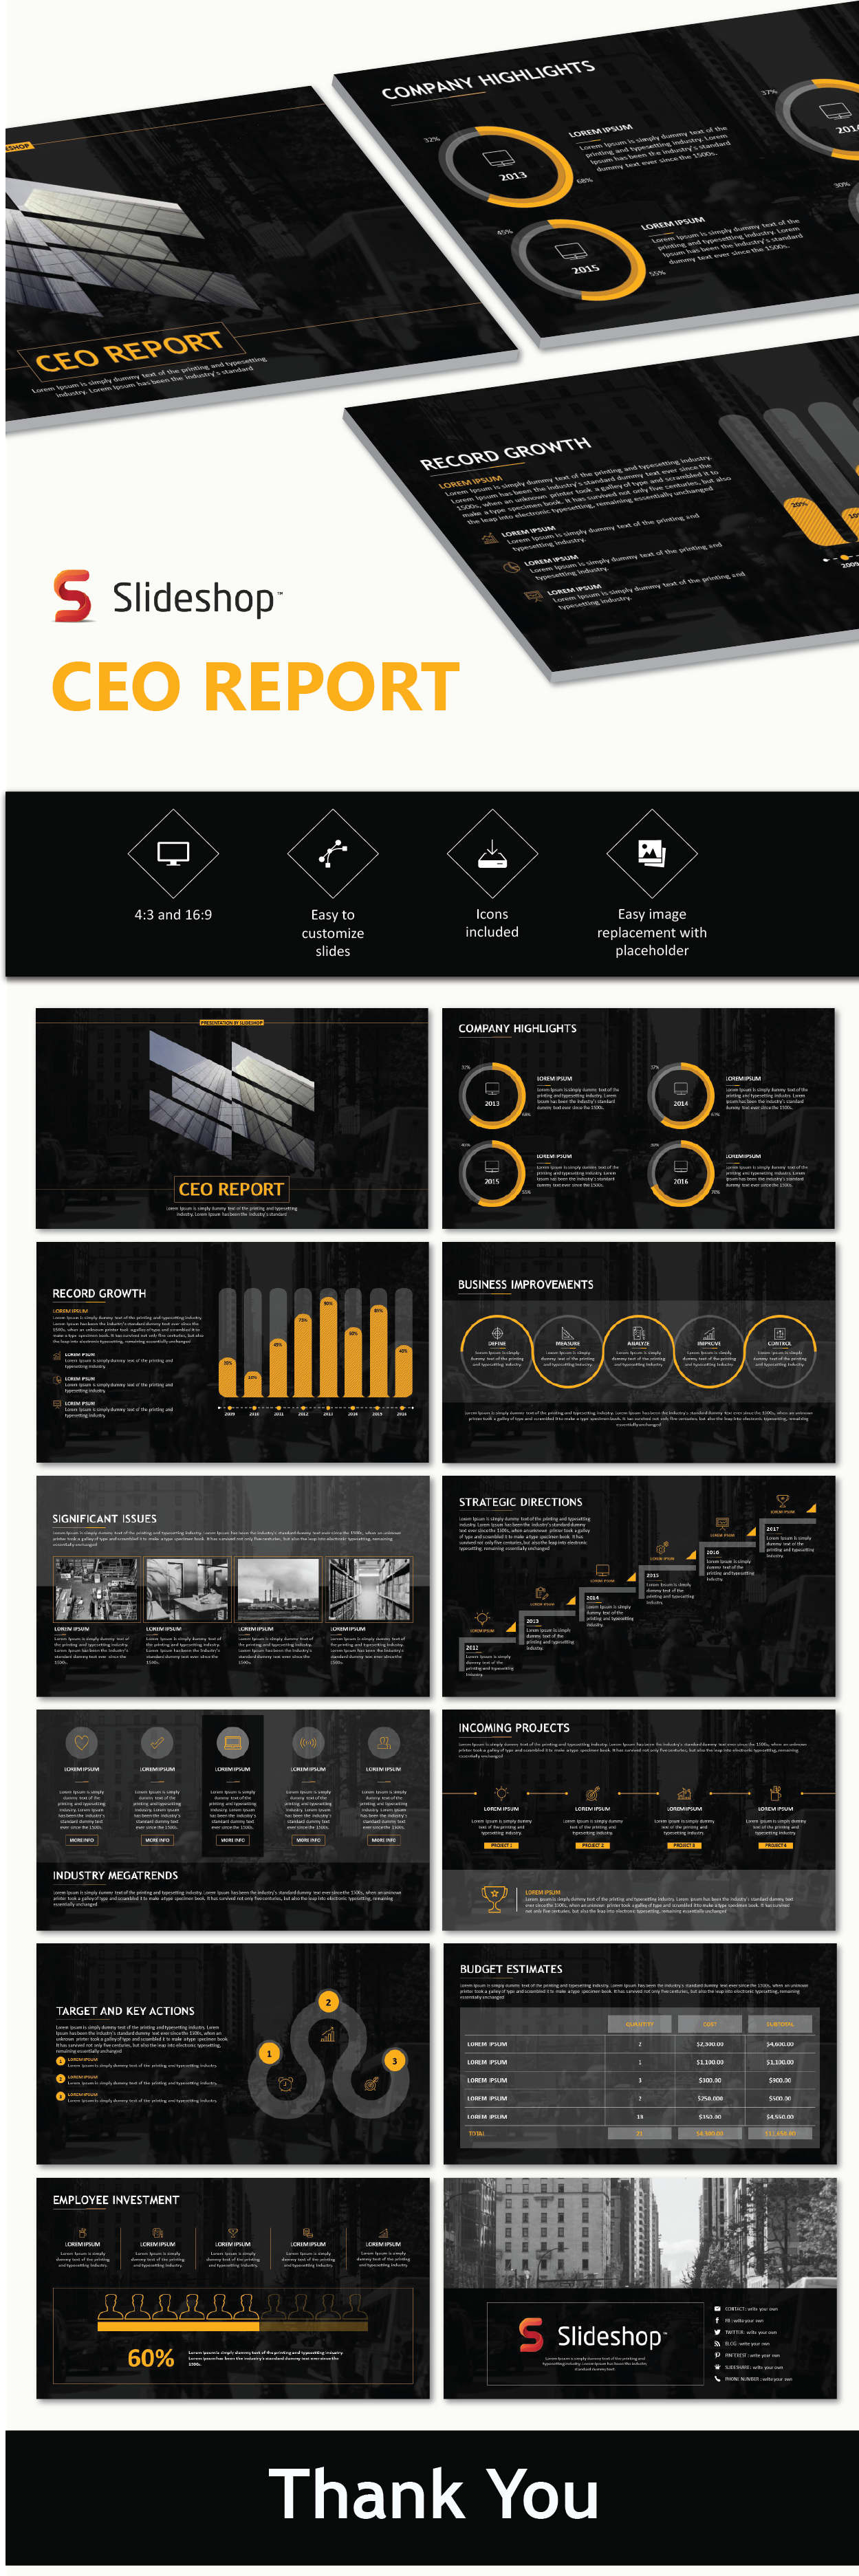 CEO report PowerPoint templates | Business & Marketing PowerPoint ...